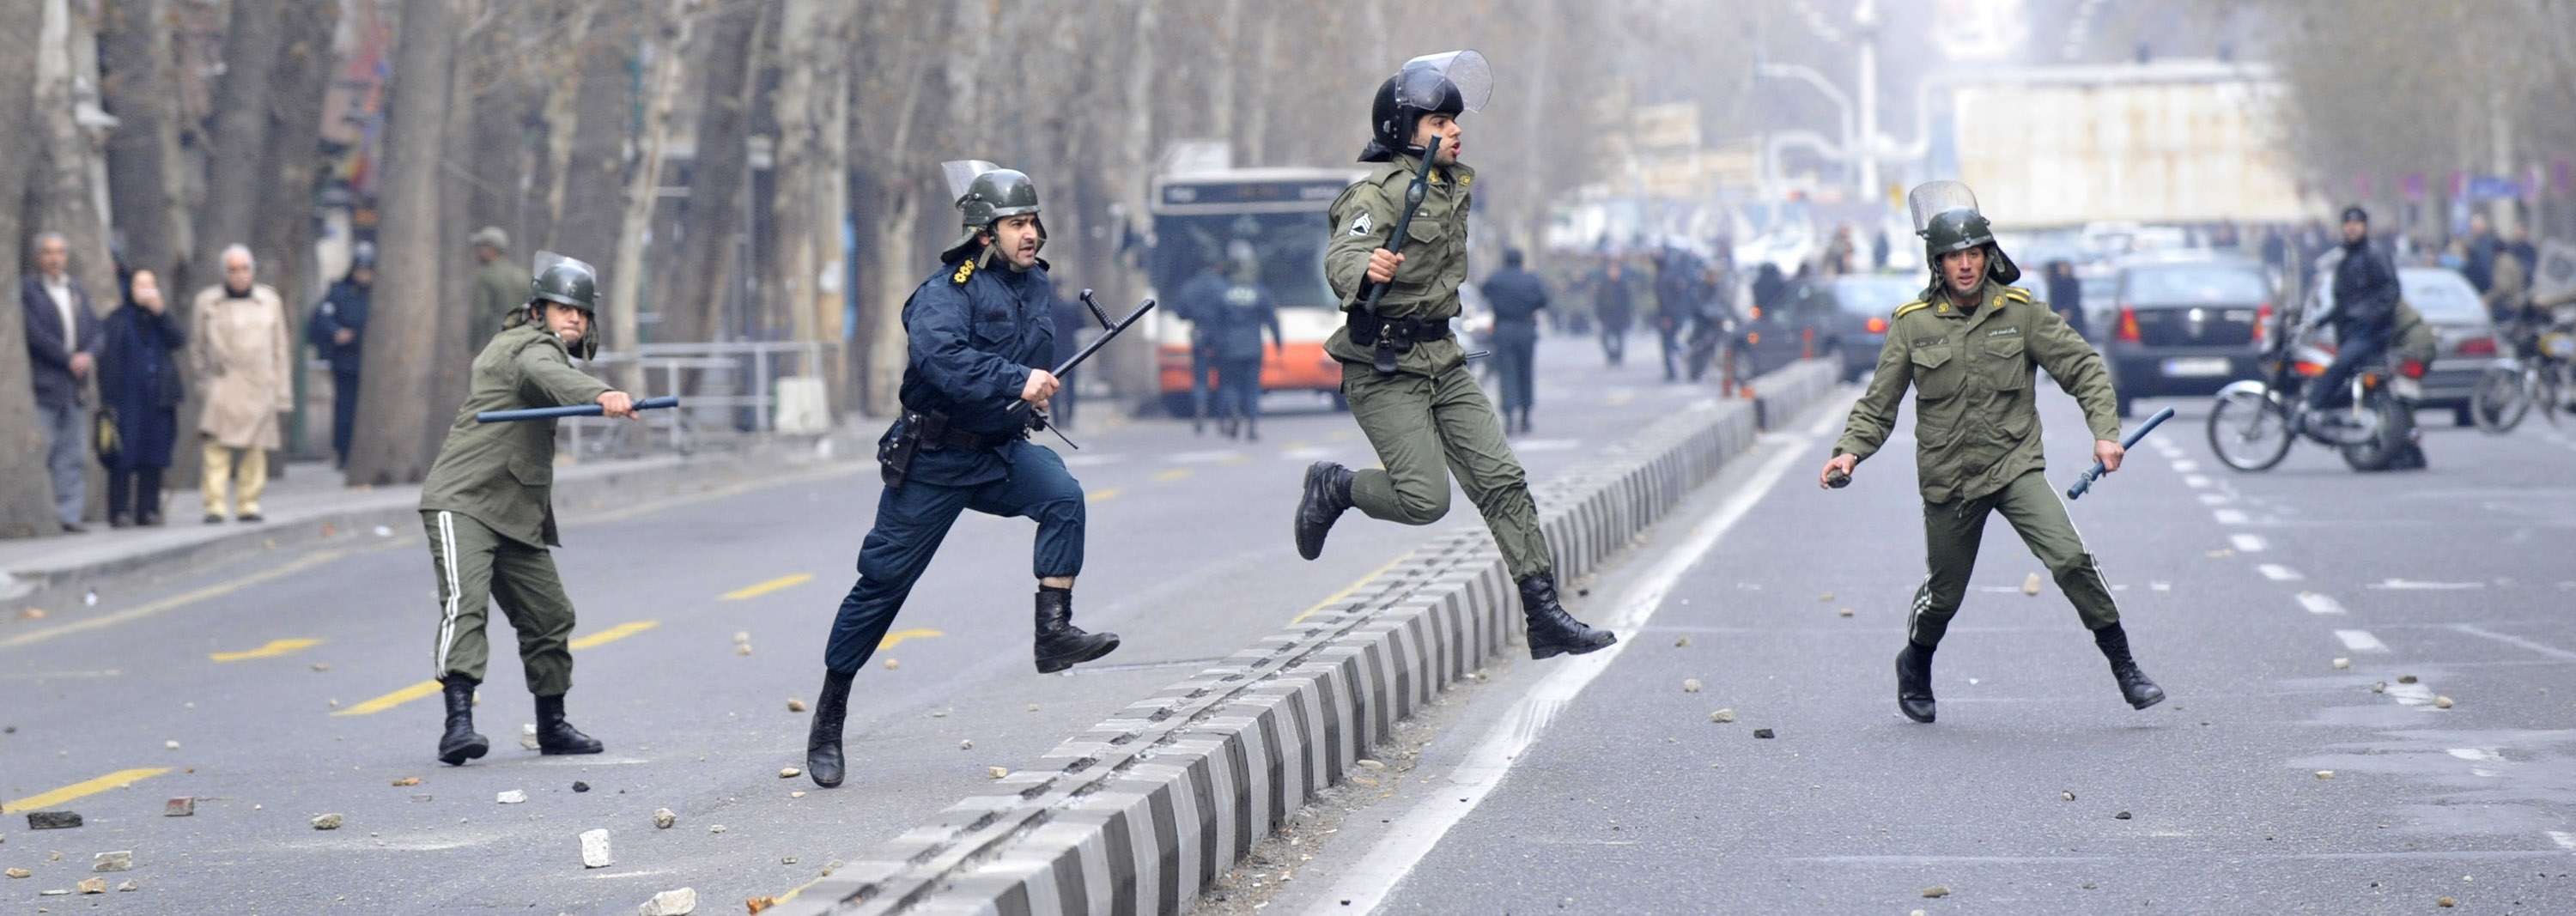 This photo, taken by an individual not employed by the Associated Press and obtained by the AP outside Iran, shows Iranian anti-riot police officers f...